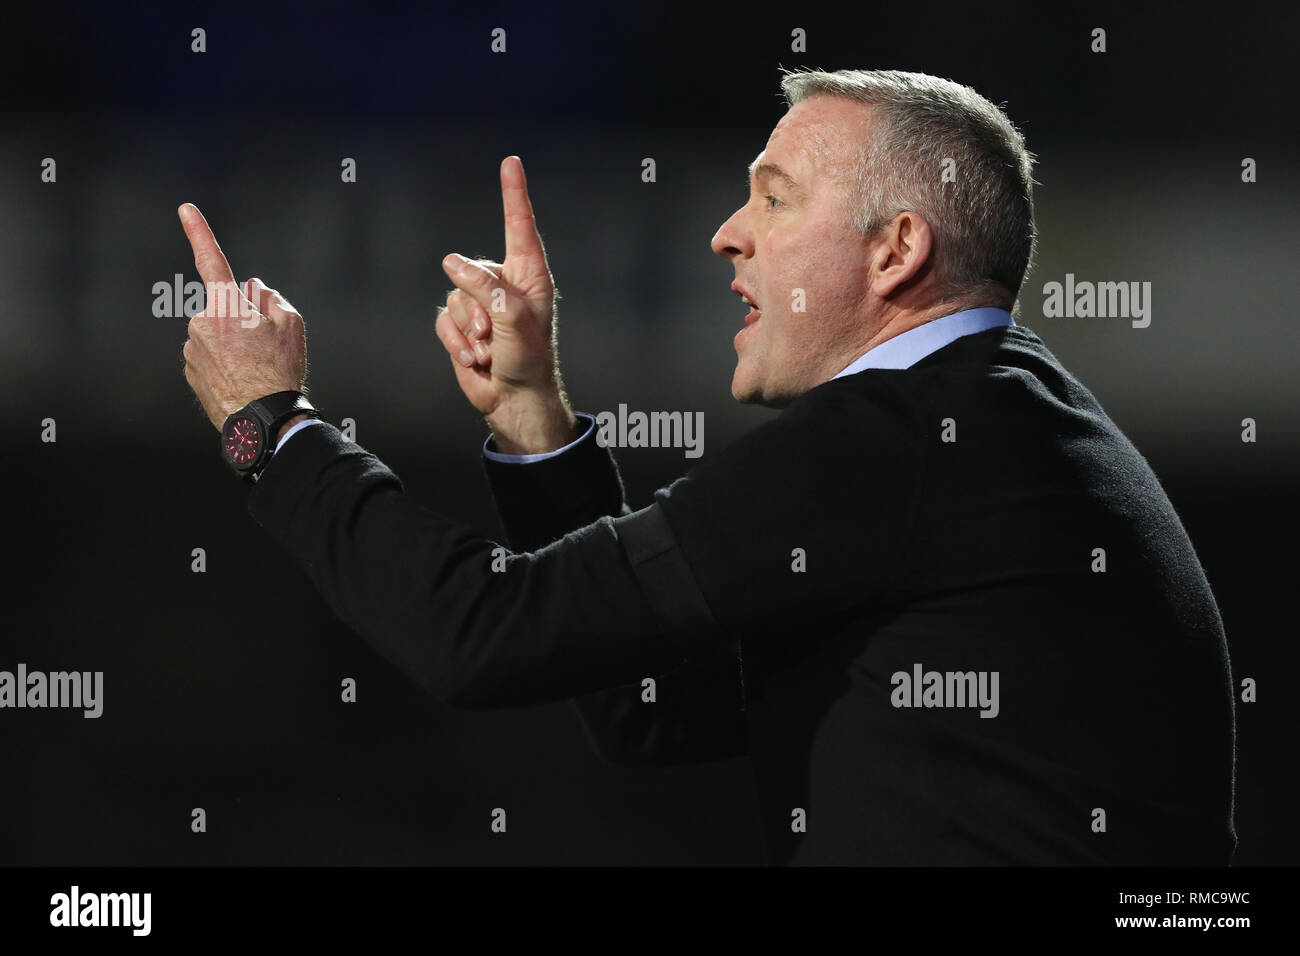 Manager of Ipswich Town, Paul Lambert shouts interactions to his players - Ipswich Town v Derby County, Sky Bet Championship, Portman Road, Ipswich -  - Stock Image